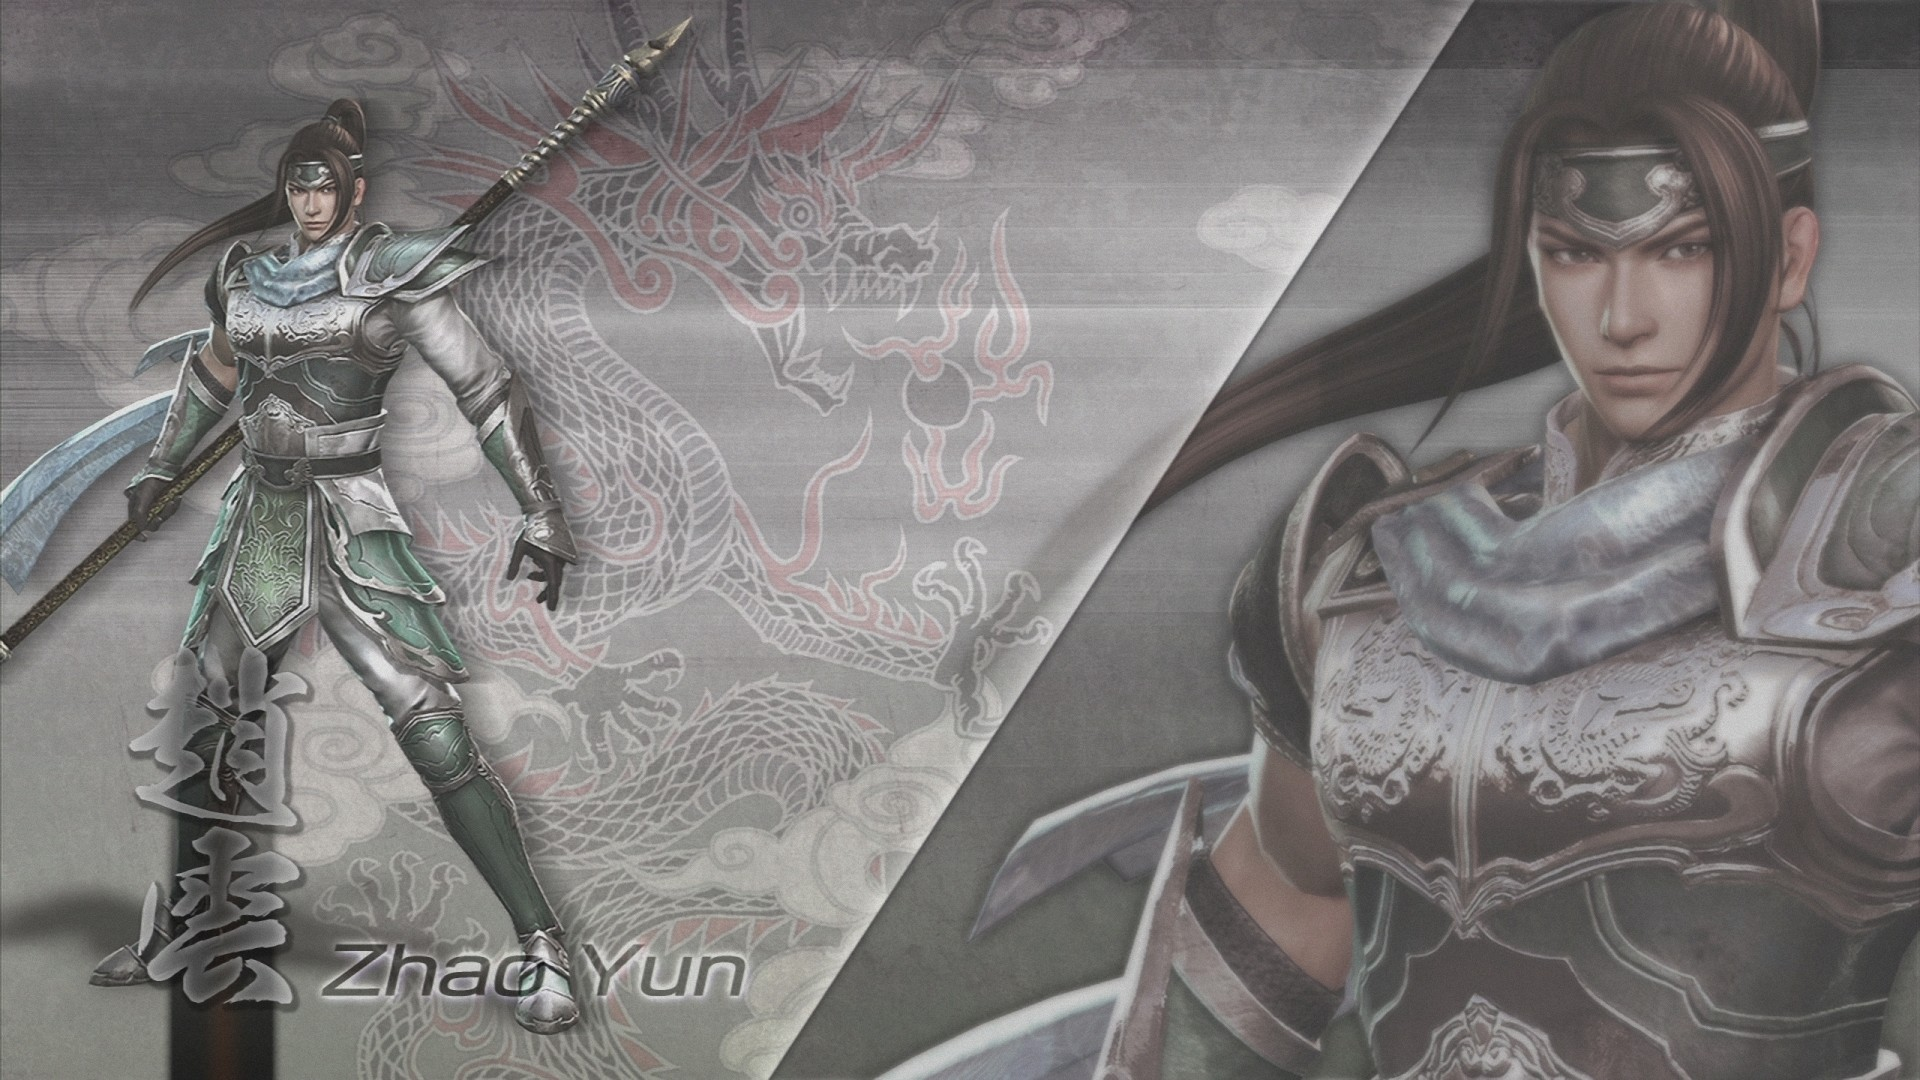 1920x1080 Tags: Anime, Dynasty Warriors, Zhao Yun, Wallpaper, HD Wallpaper, Official